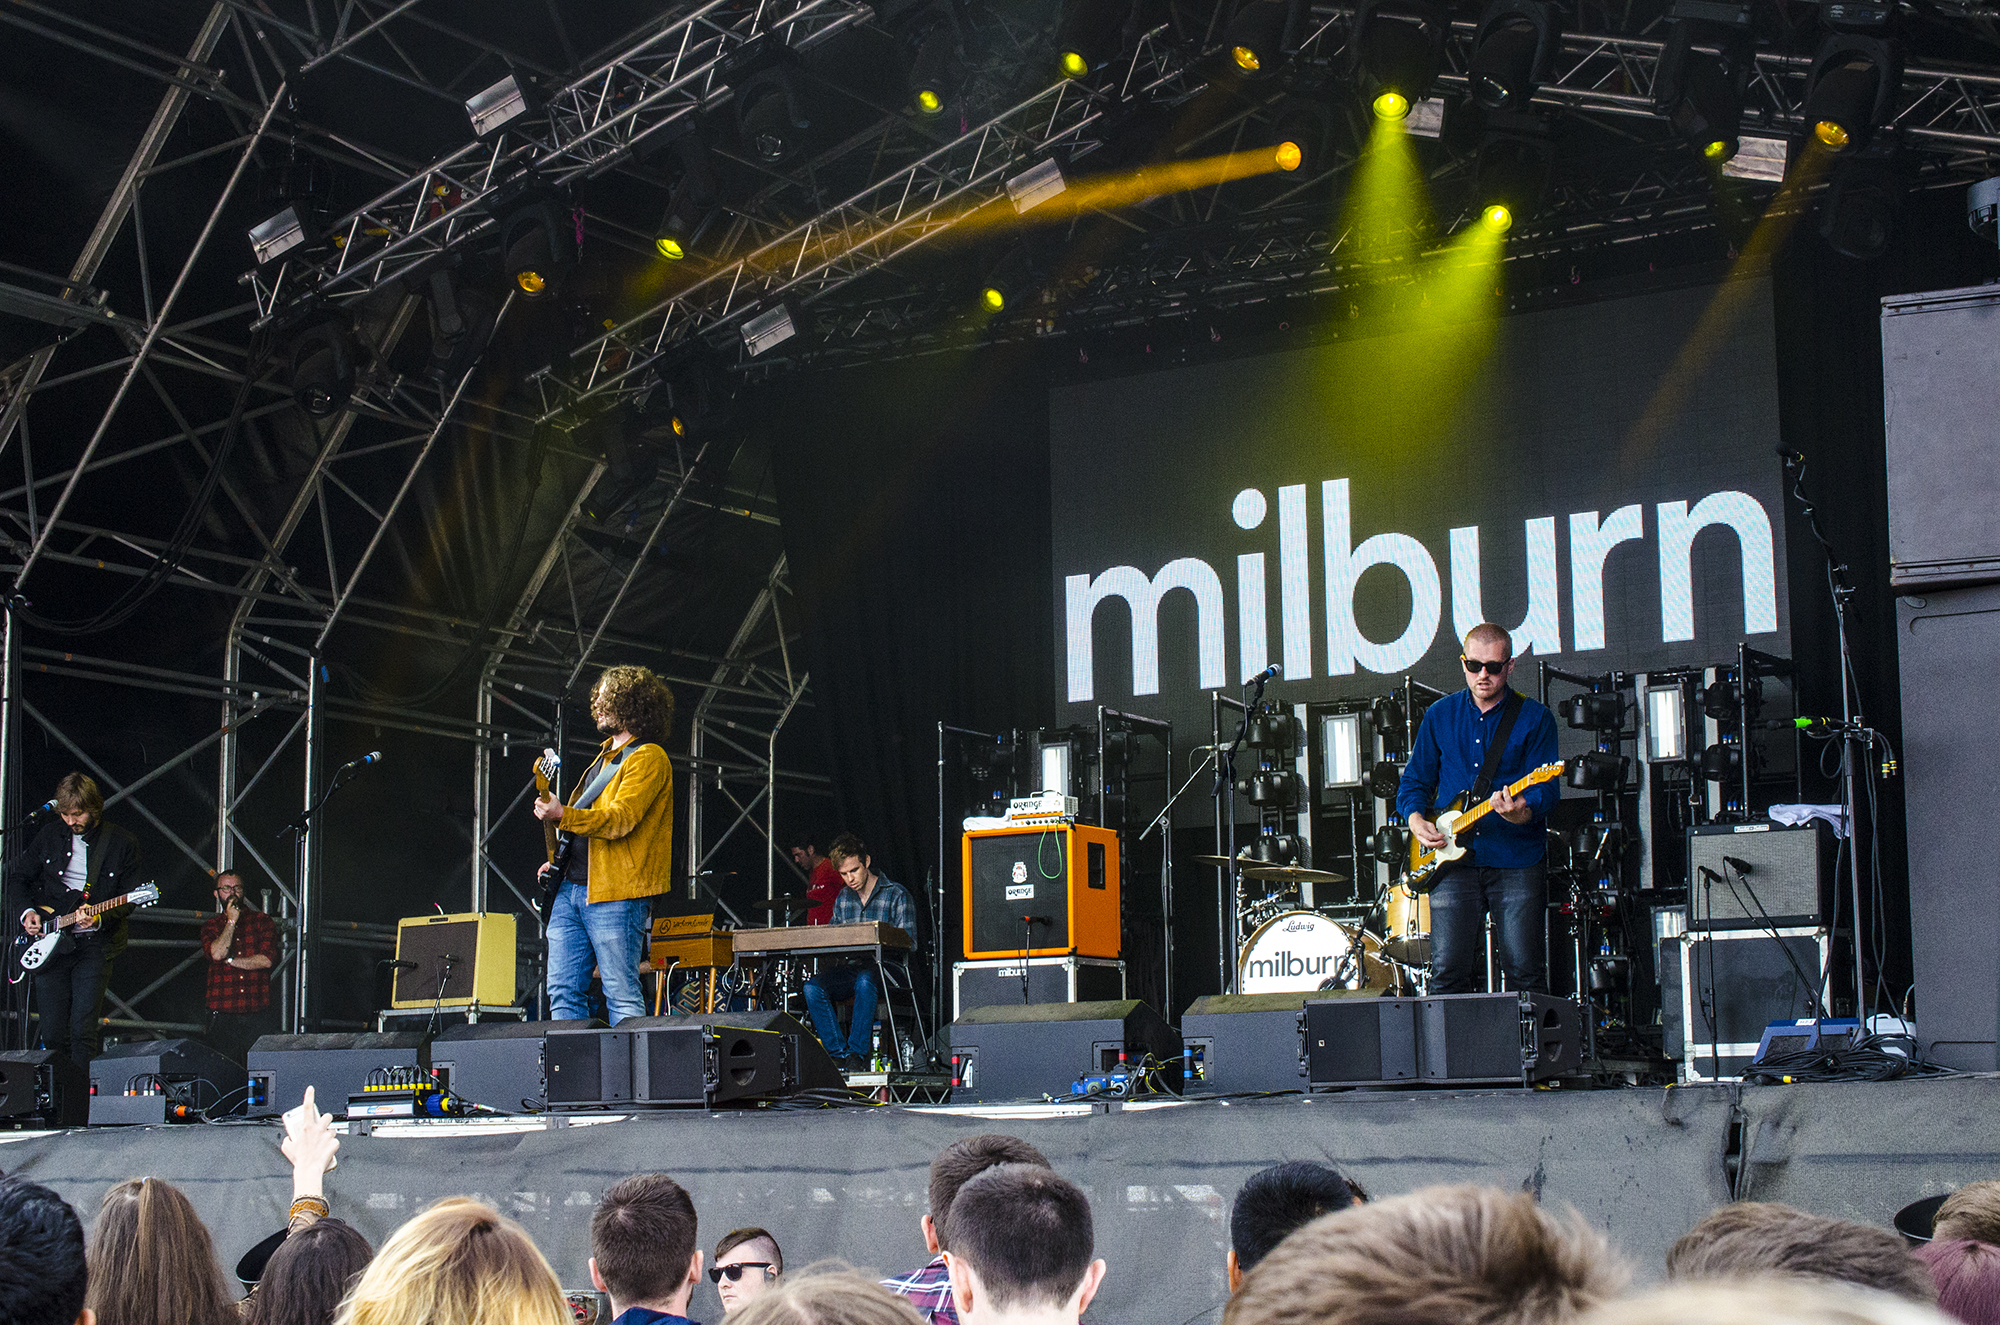 Liverpool Sound City 2017: Milburn